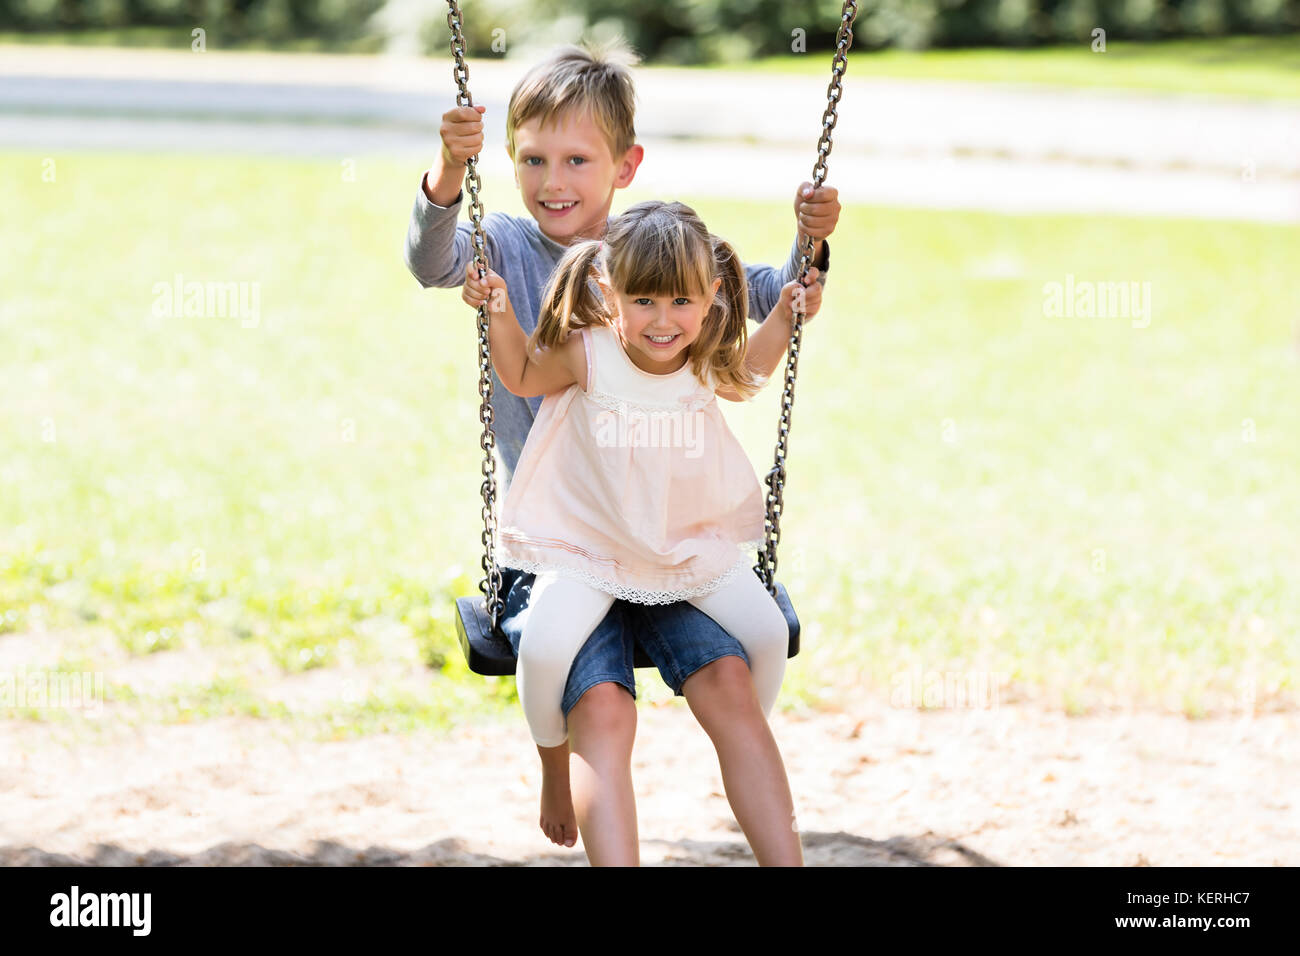 Two Happy Children Enjoying On Swing In The Park Stock Photo